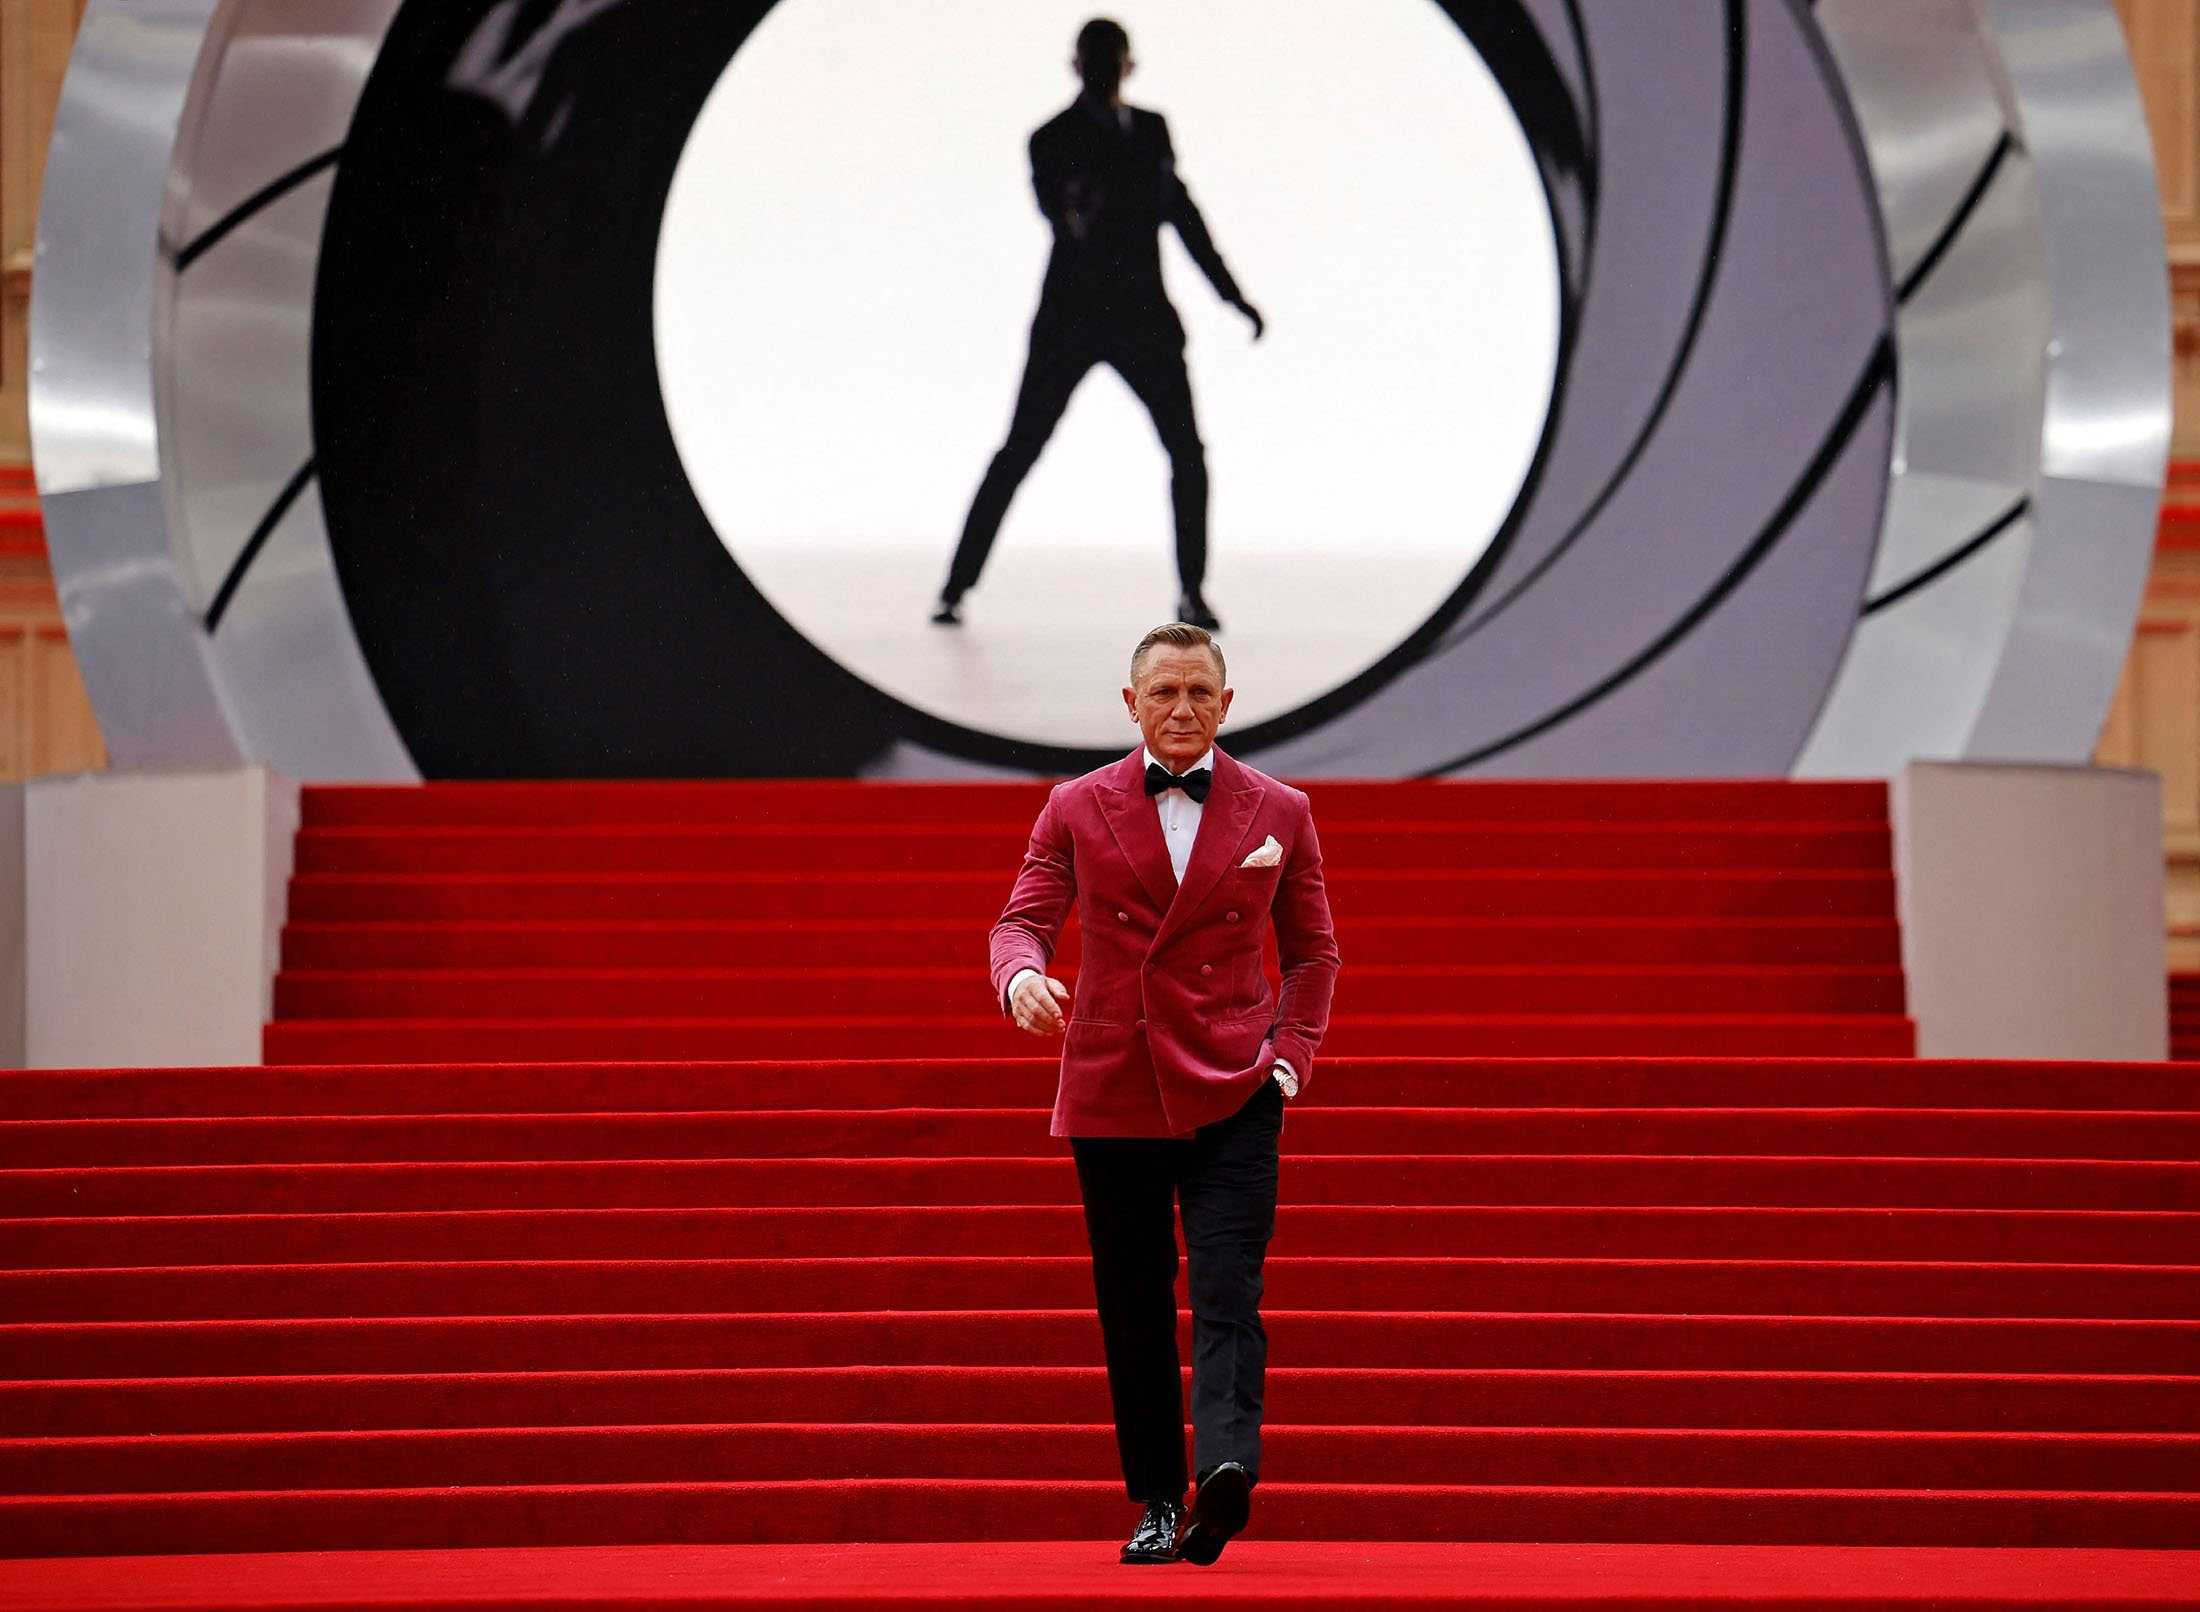 Daniel Craig walks on the red carpet at the World Premiere of the James Bond film, 'No Time To Die,' at the Royal Albert Hall, in London, U.K., Sept. 28, 2021. (AFP Photo)